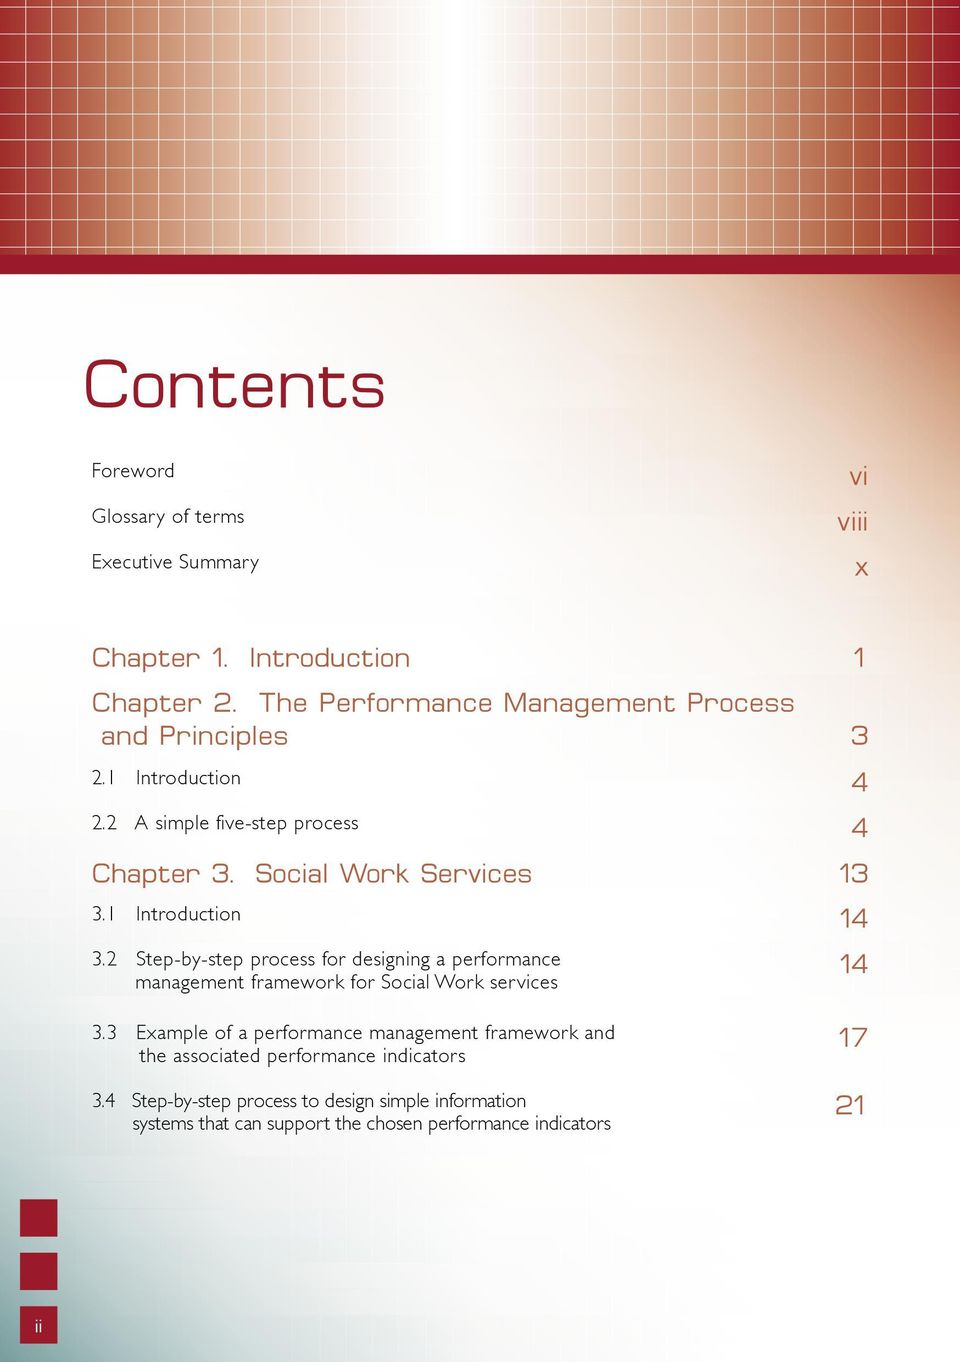 1 Introduction 14 3.2 Step-by-step process for designing a performance management framework for Social Work services 14 3.